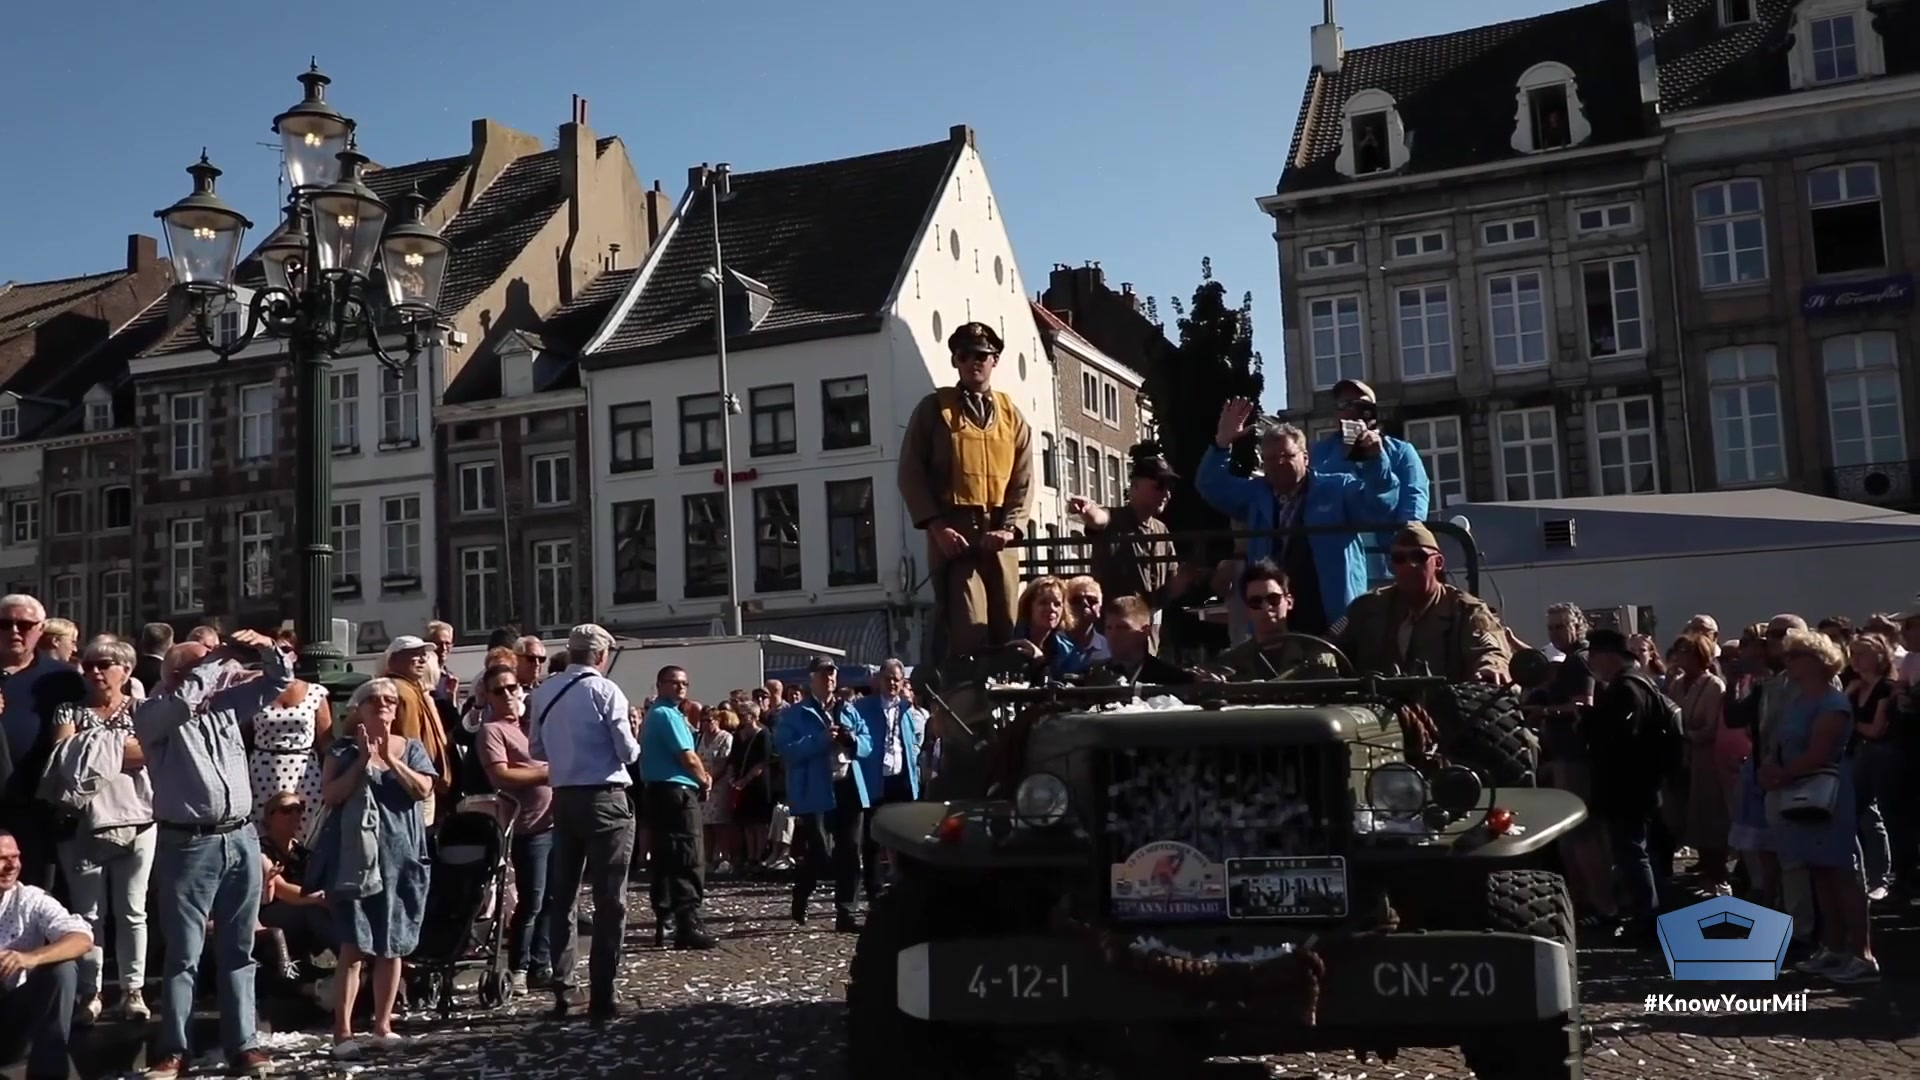 A parade in Maastricht, Netherlands, honored U.S. World World II veterans, Sept. 14, 2019. Soldiers assigned to the Army's 30th Infantry Division helped liberate the city in 1944. Four men who served in the division traveled to the Netherlands with the North Carolina National Guard to celebrate the 75th anniversary of the liberation of Limburg province; Maastricht is the province's capital. The NCNG's 30th Armored Brigade Combat Team traces its lineage to the 30th Infantry Division and guardsmen's uniforms still bear the same unit patch.